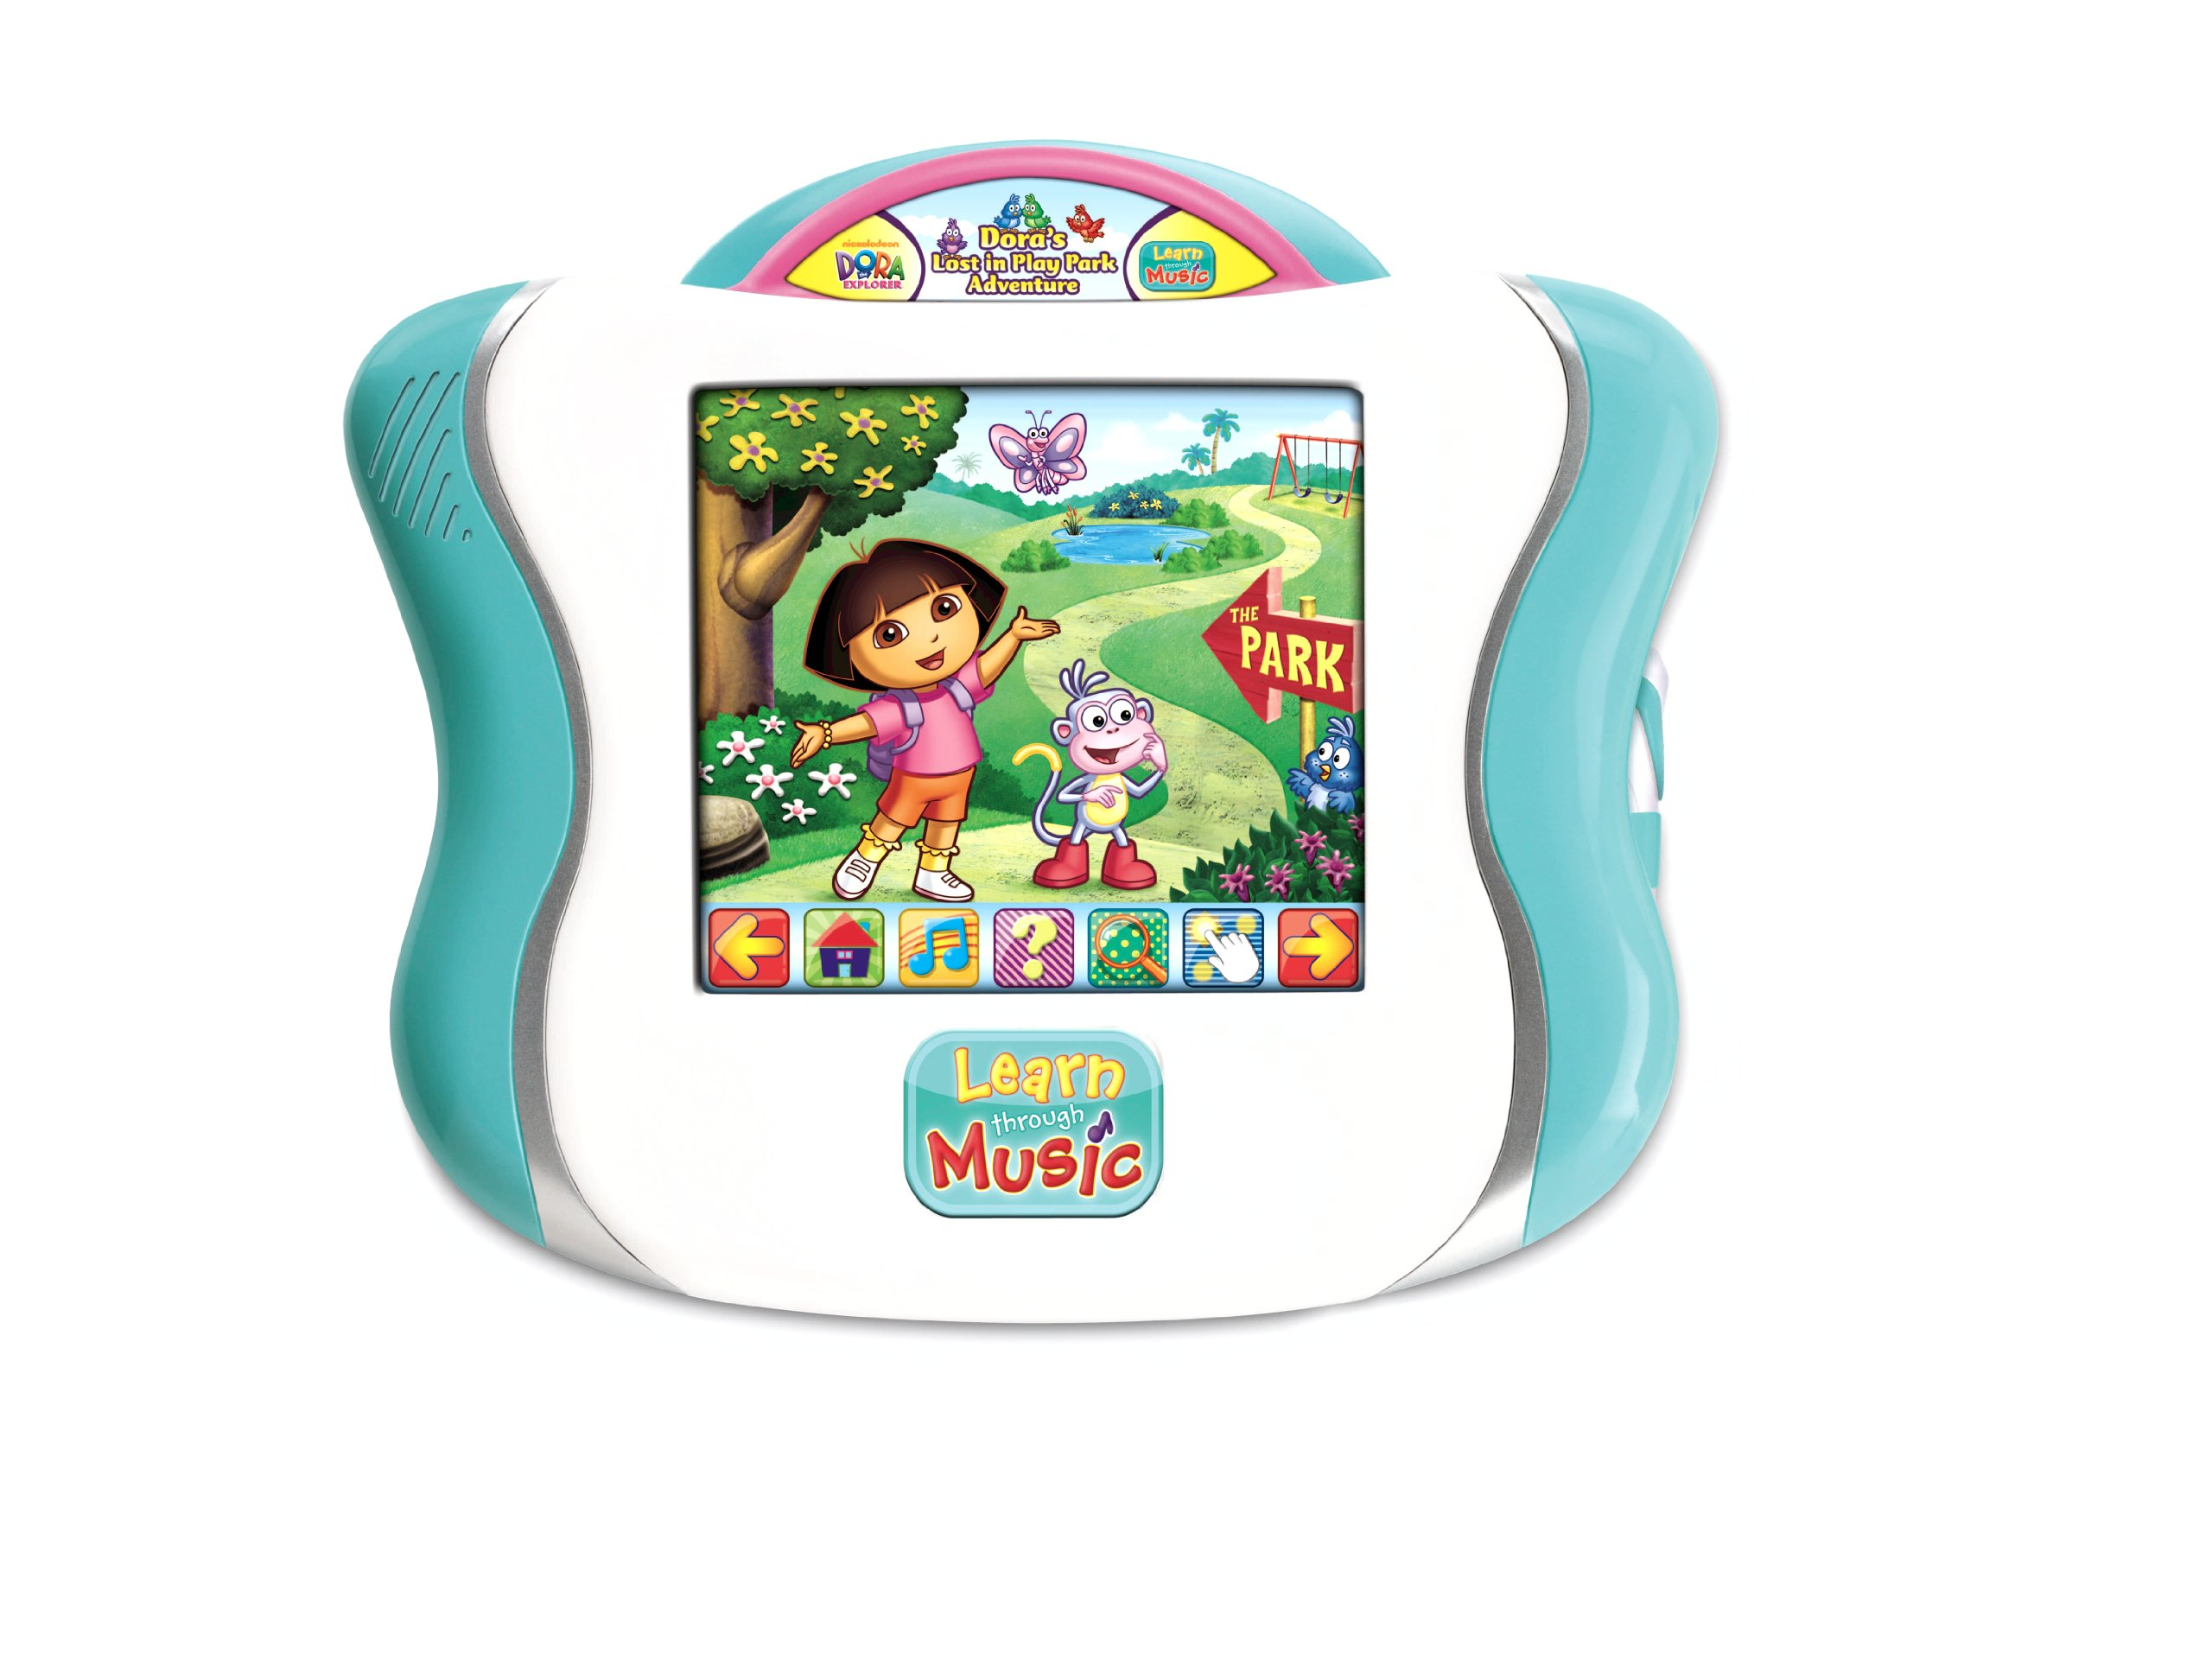 Fisher-Price Learn Through Music Touchpad Software - Dora's Lost in Play Park Adventure by Fisher-Price (Image #3)